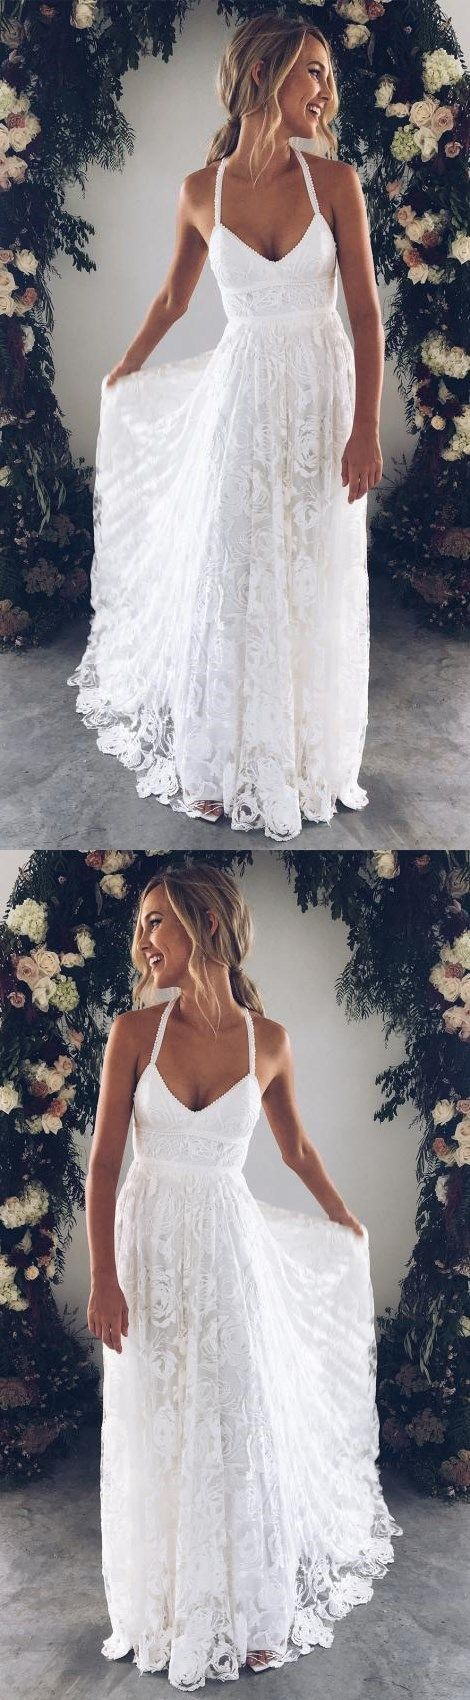 White Bridal Dress V Neck Party Dress Spaghetti Prom Dress Lace Long Prom Dress, White Evening Dress Wedding Dress Charming Bridal Dresses